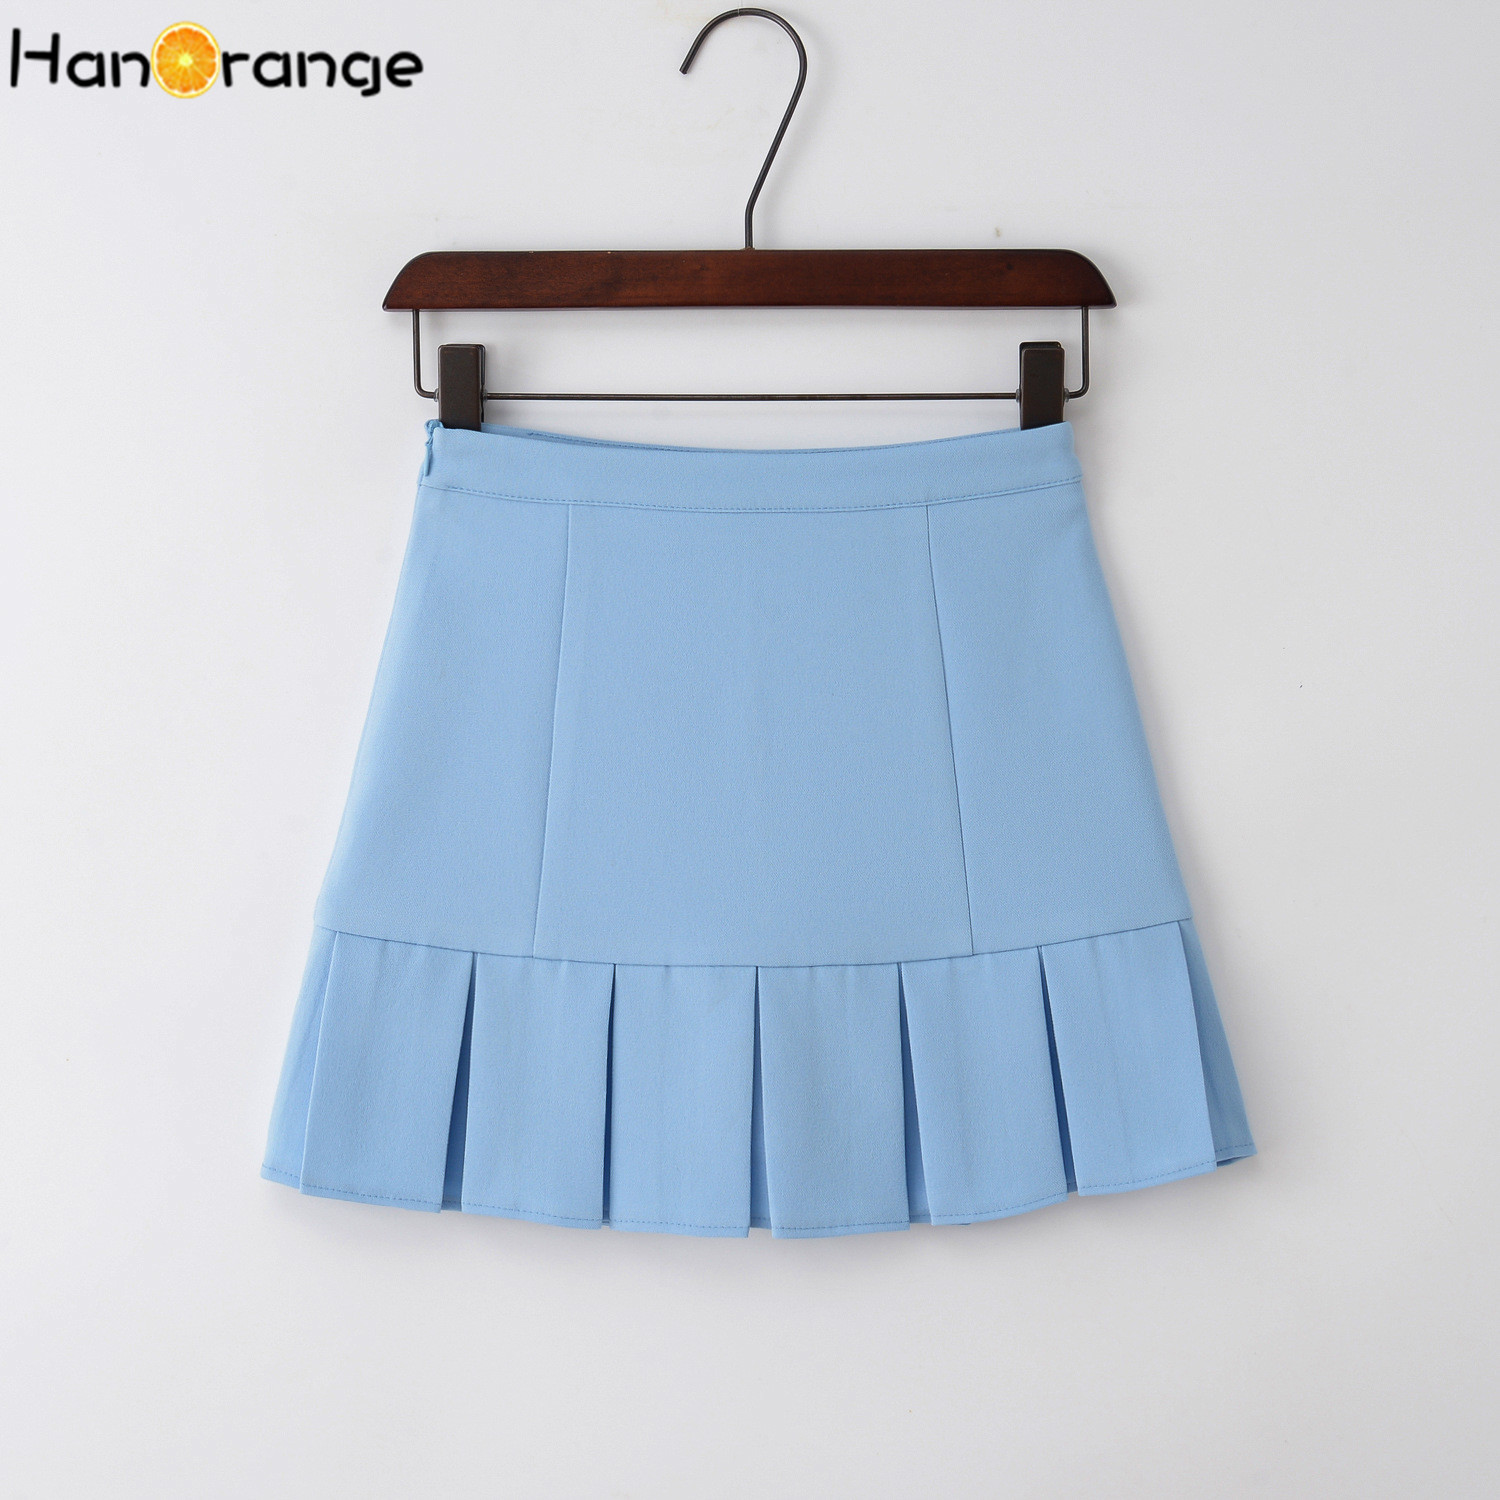 HanOrange 2019 High Waist Slim College Preppy Style Pleated Skirt With Safety Pant White/Black/Pink/Dark Blue/Sky Blue XS-XXL